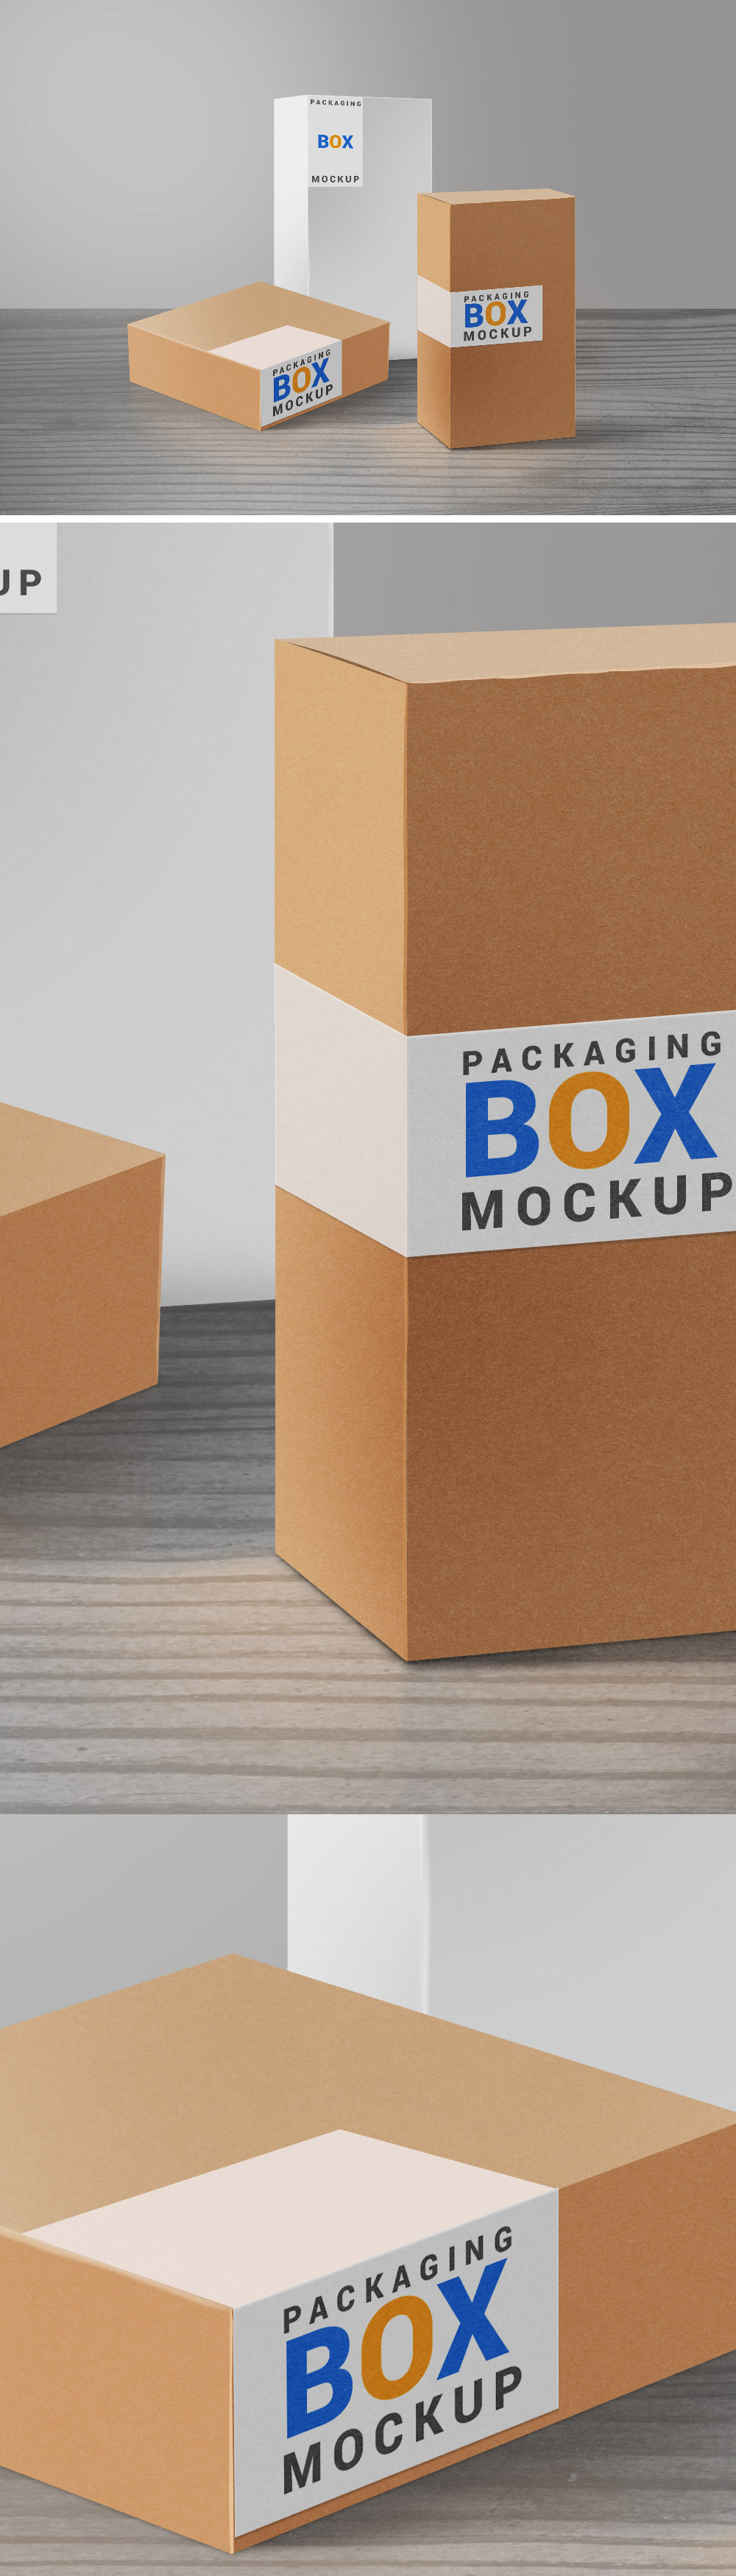 Download Product Packaging Boxes PSD Mockup - GraphicsFuel